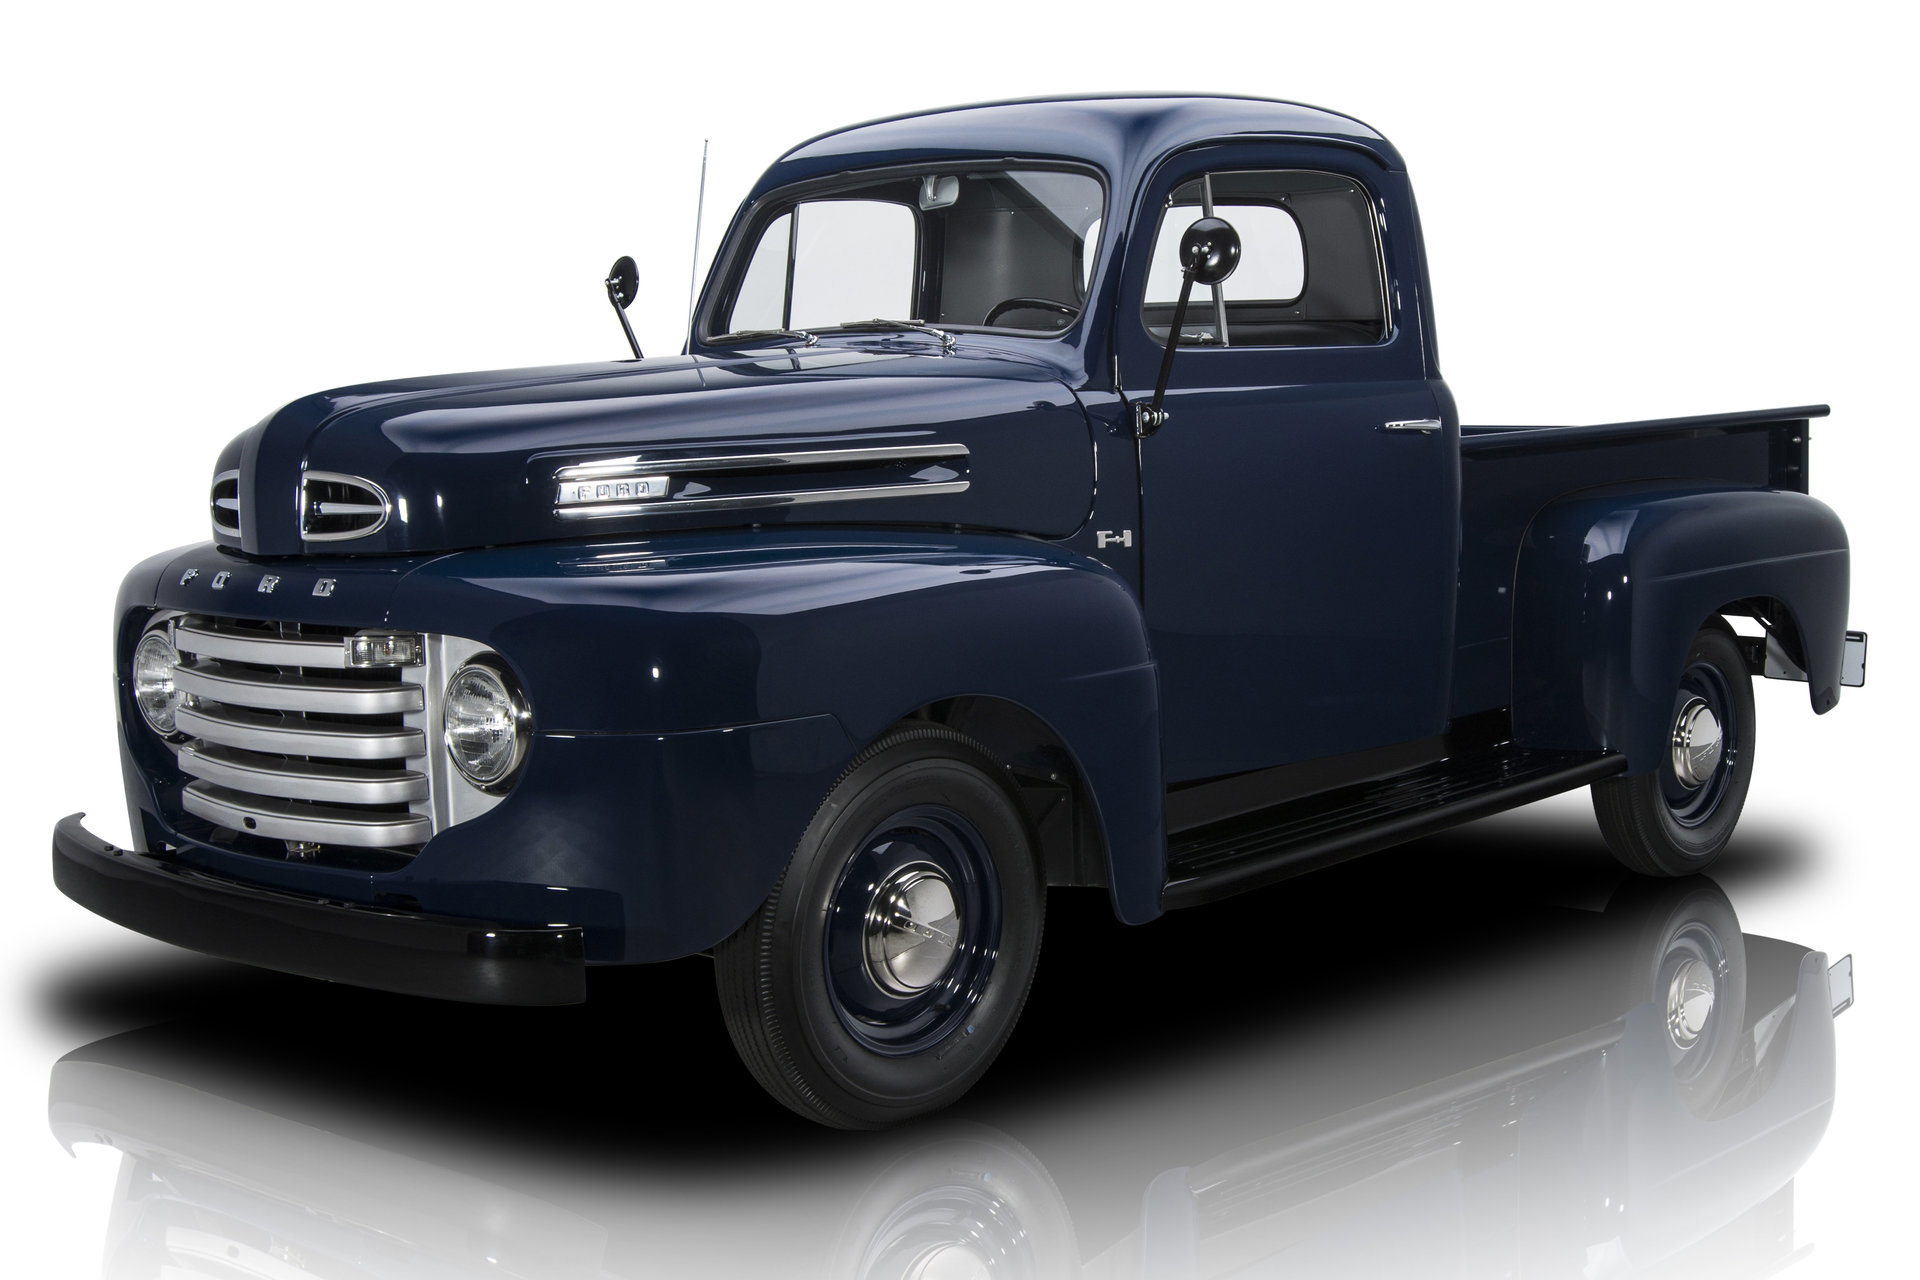 136149 1950 Ford F1 | RK Motors Classic and Performance Cars for Sale